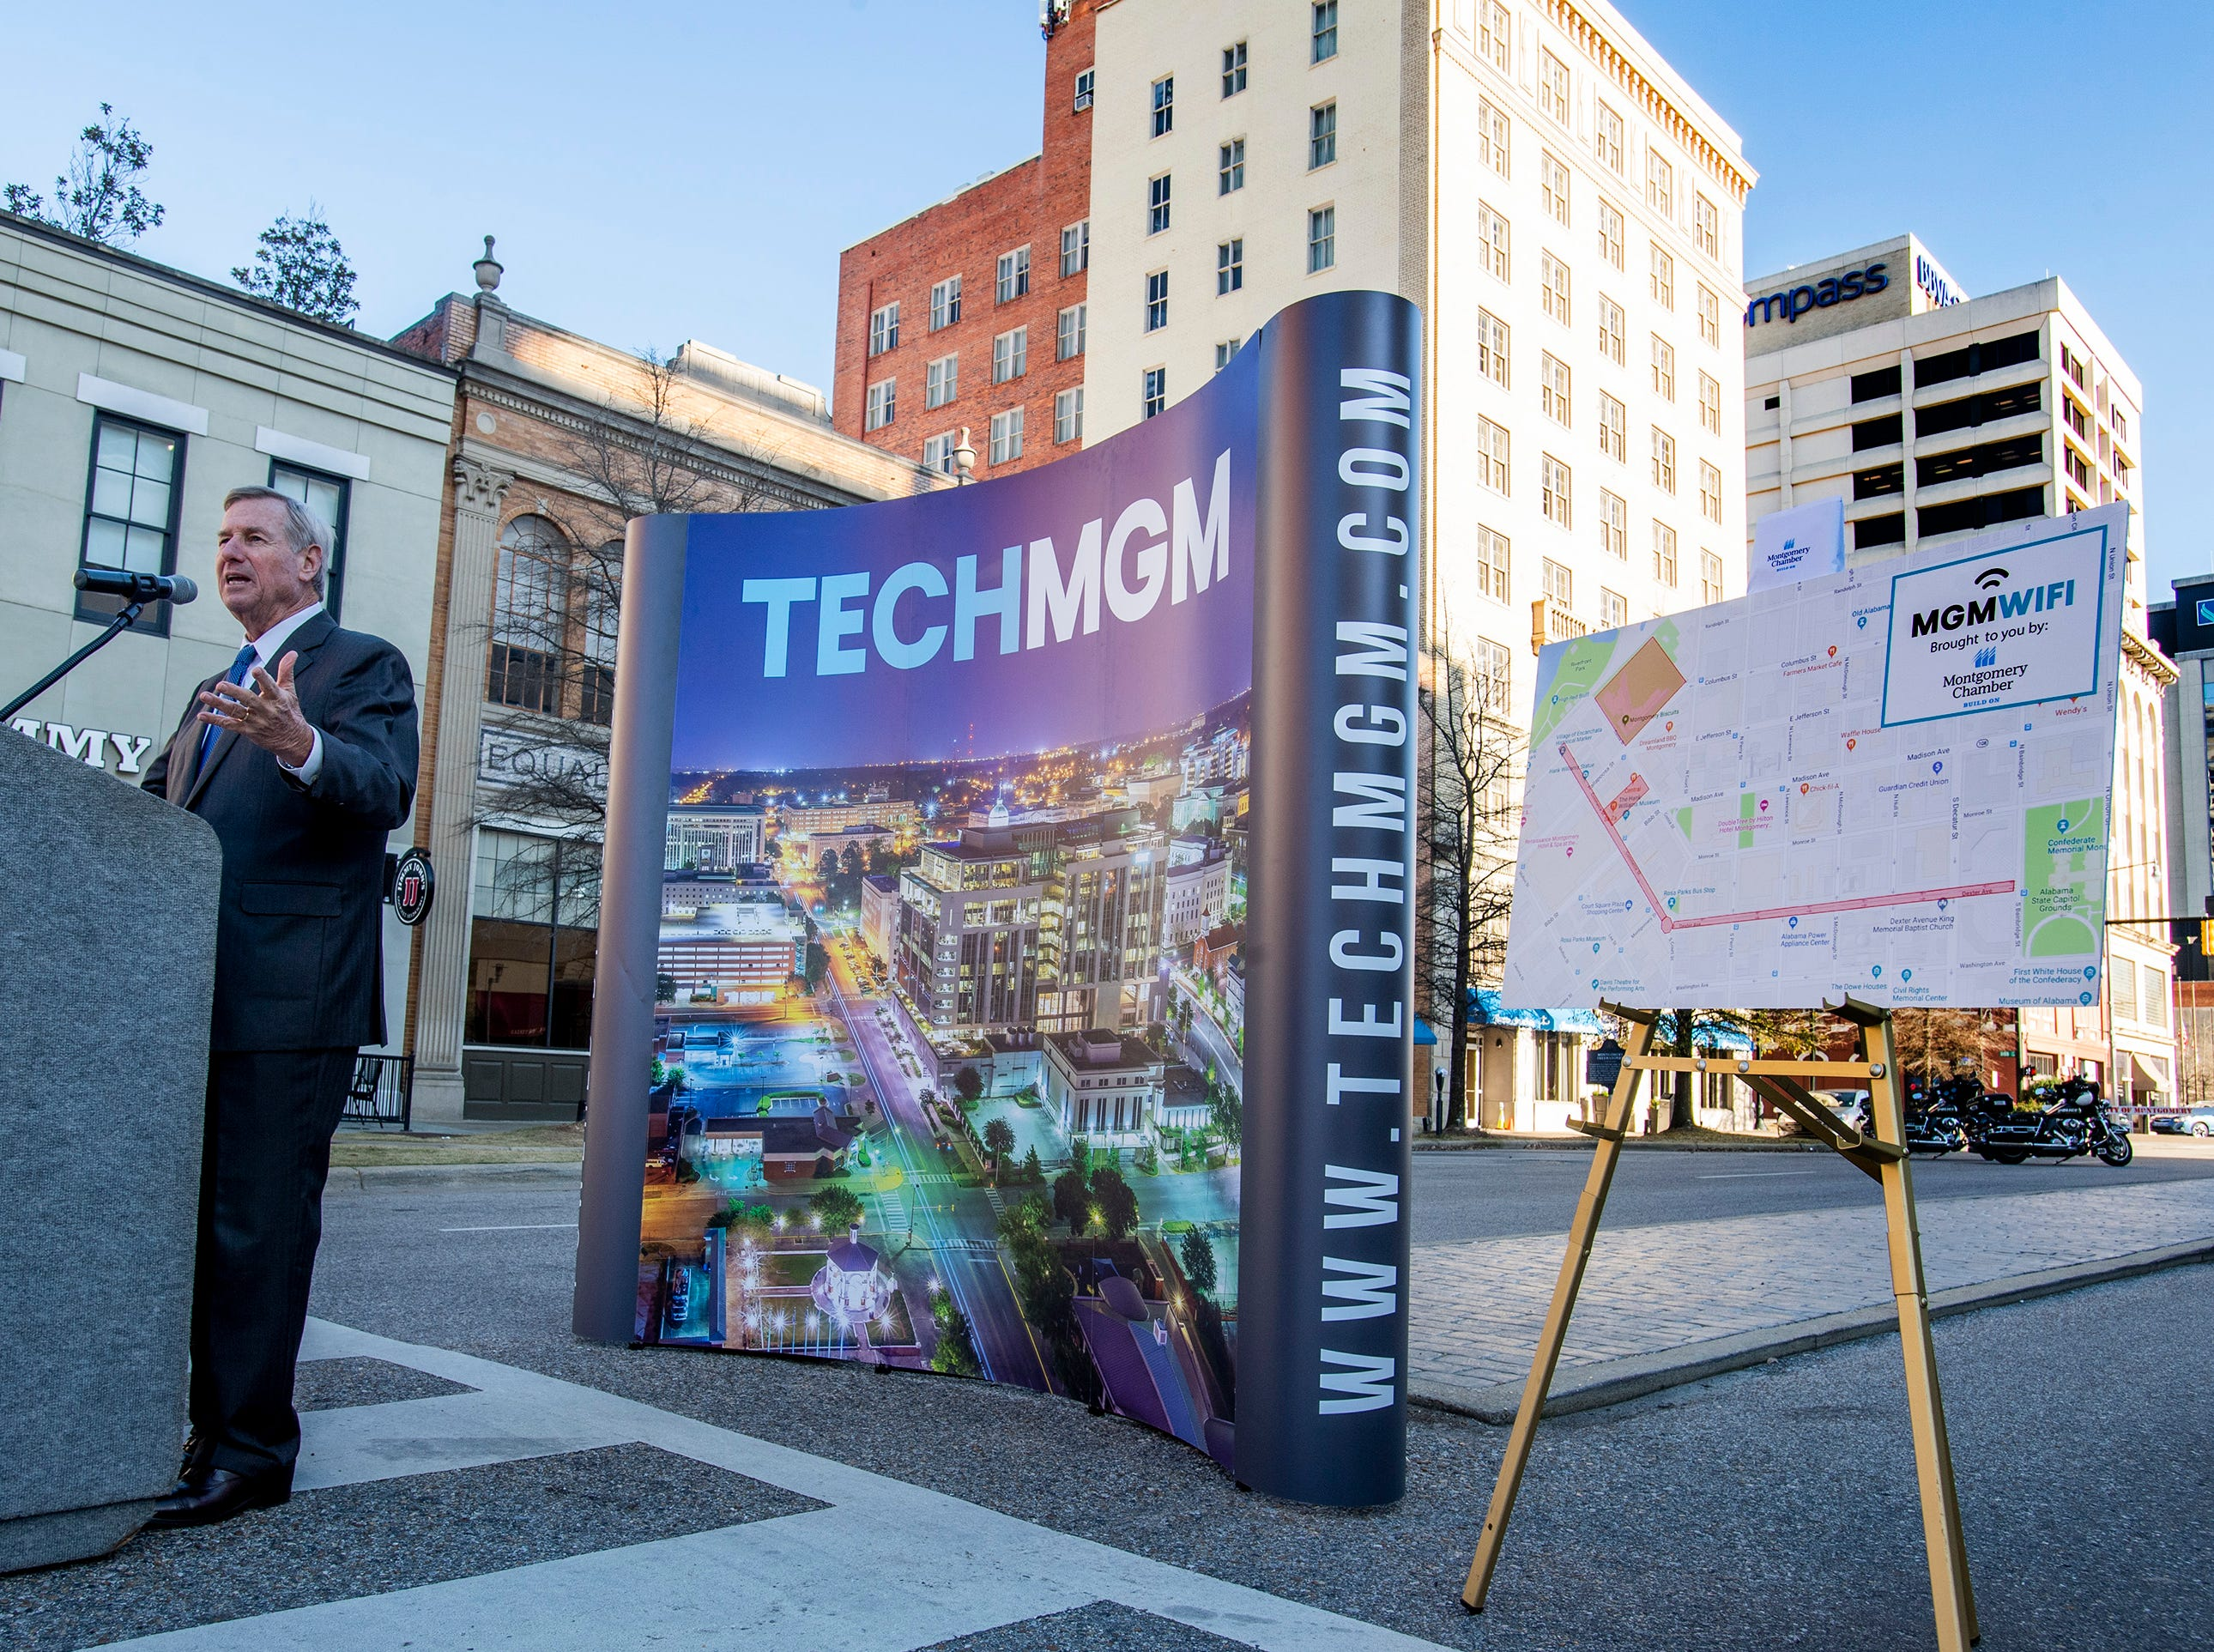 Montgomery Mayor Todd Strange announces free 1GB WiFi and other tech improvements along the Commerce Street / Dexter Avenue corridor in downtown Montgomery, Ala., on Wednesday January 16, 2019.